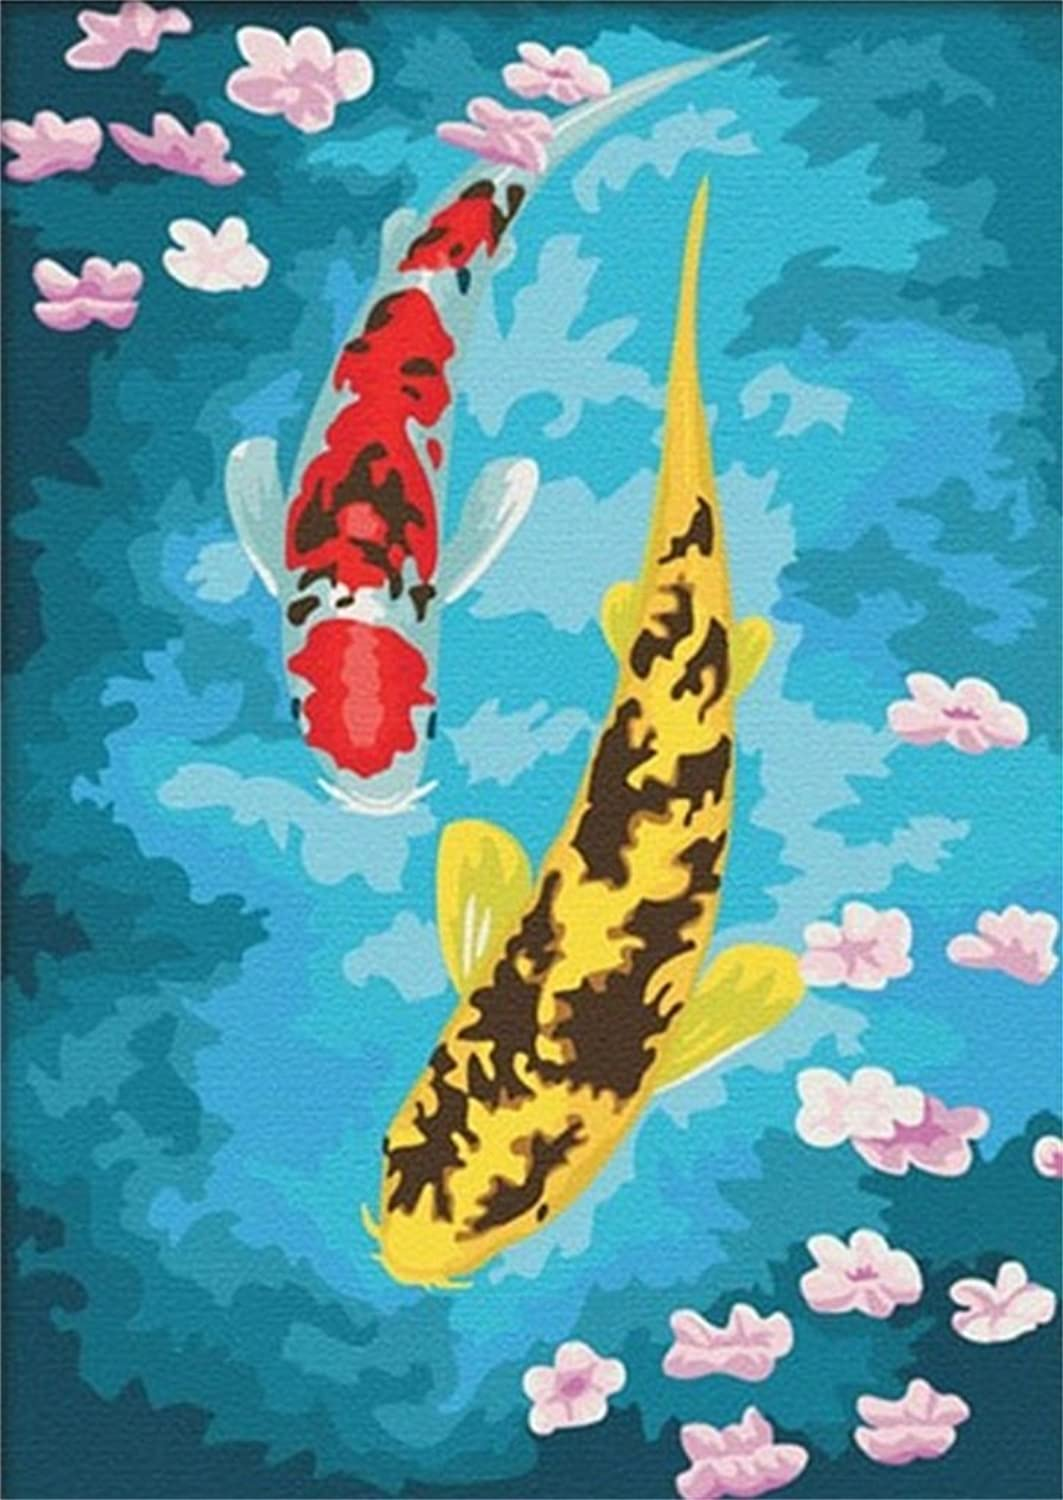 Diy Oil Painting, Paint By Number Kits -Flower Fish, 16X20 Inch